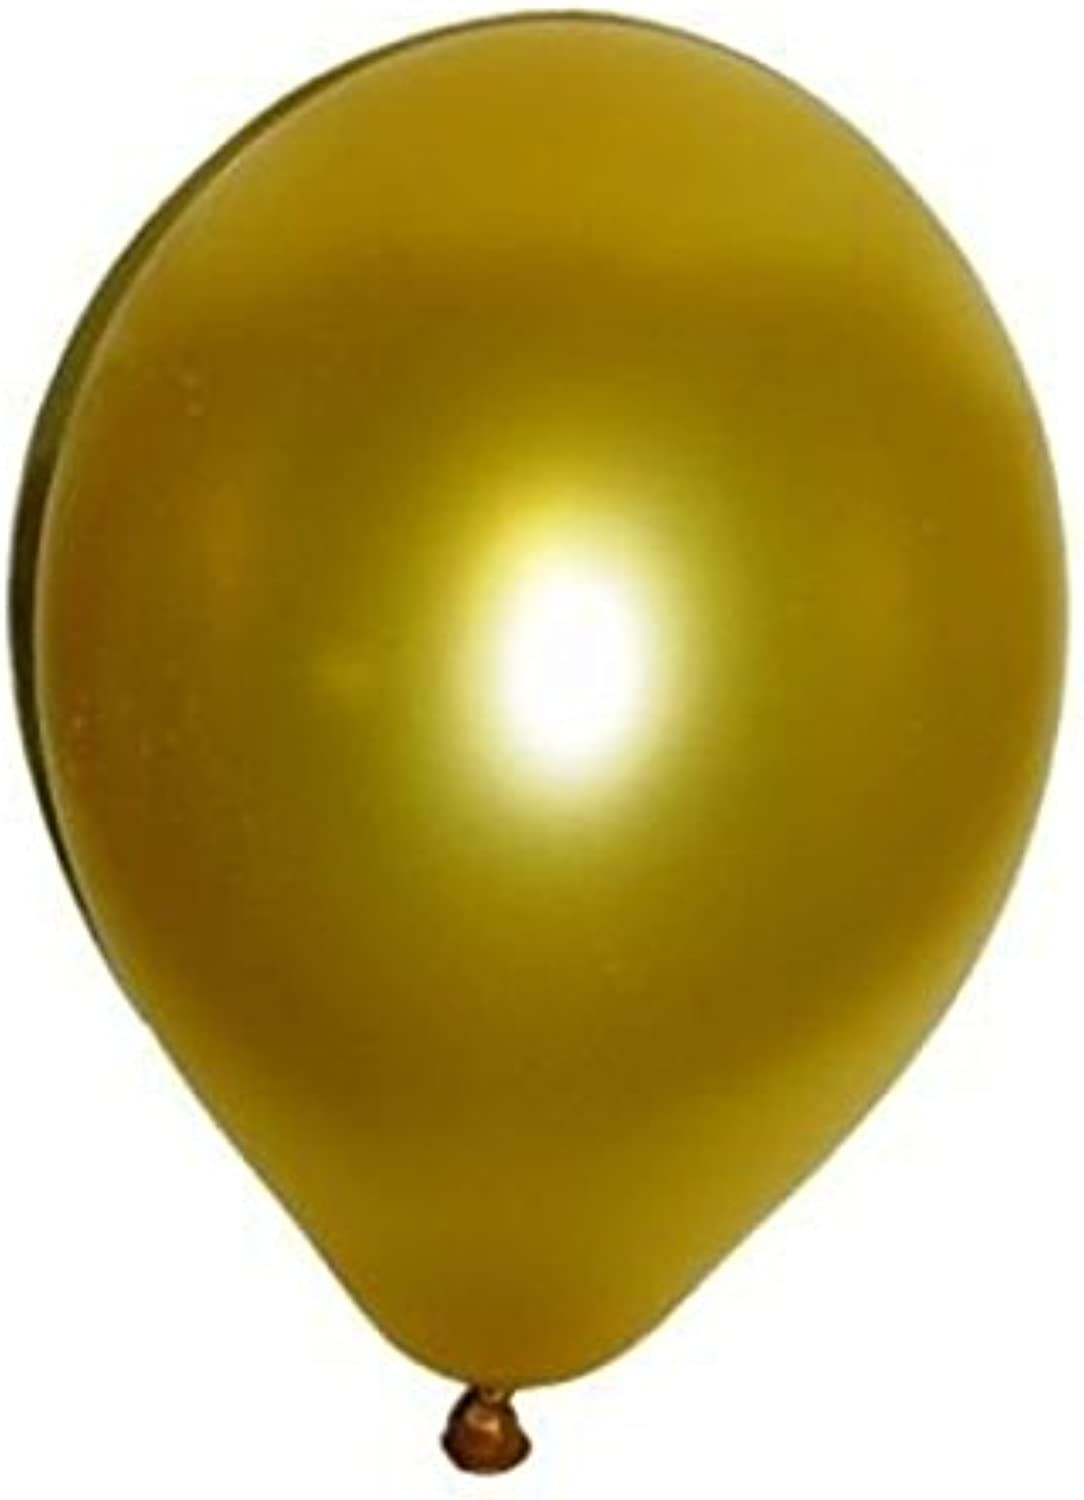 OULII Latex Metallic Balloons, 12 Inch, Pack of 100, golden